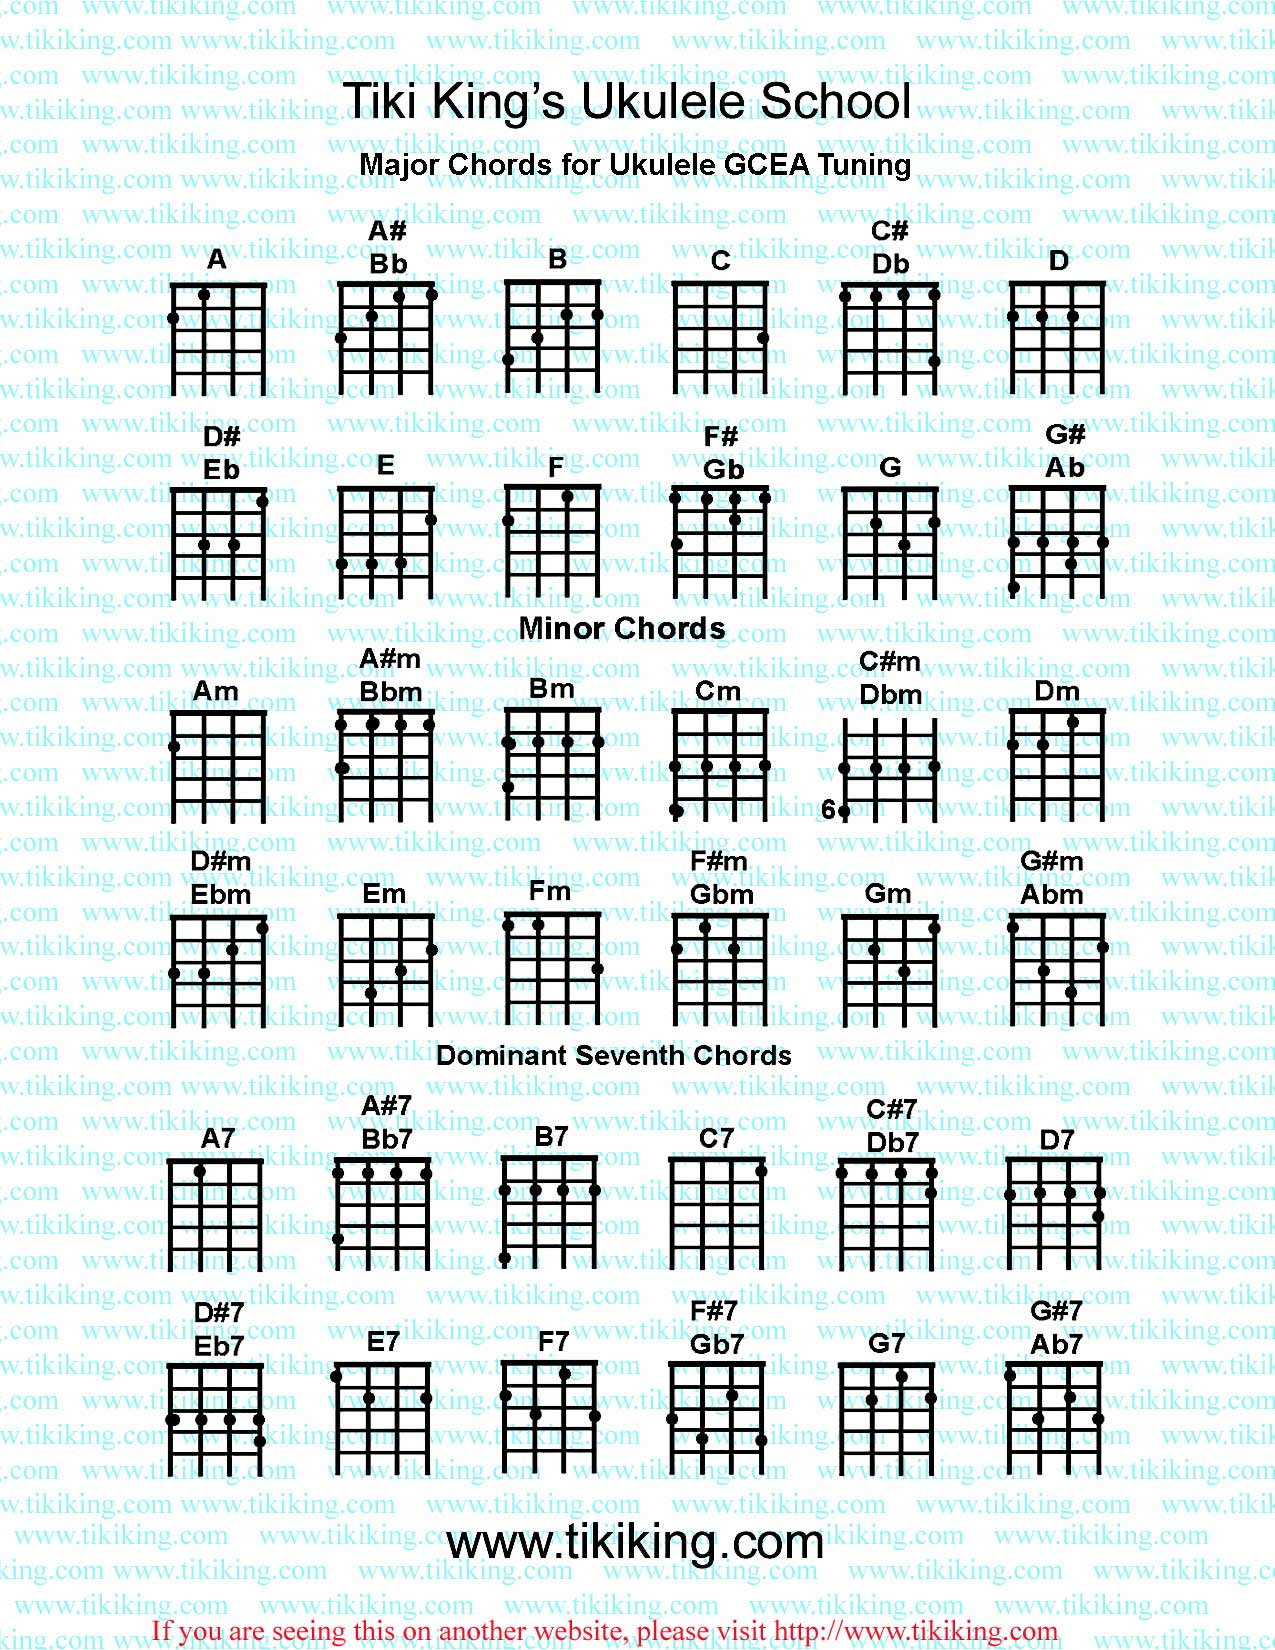 Where can I find free online guitar chord charts? : Yahoo Answers